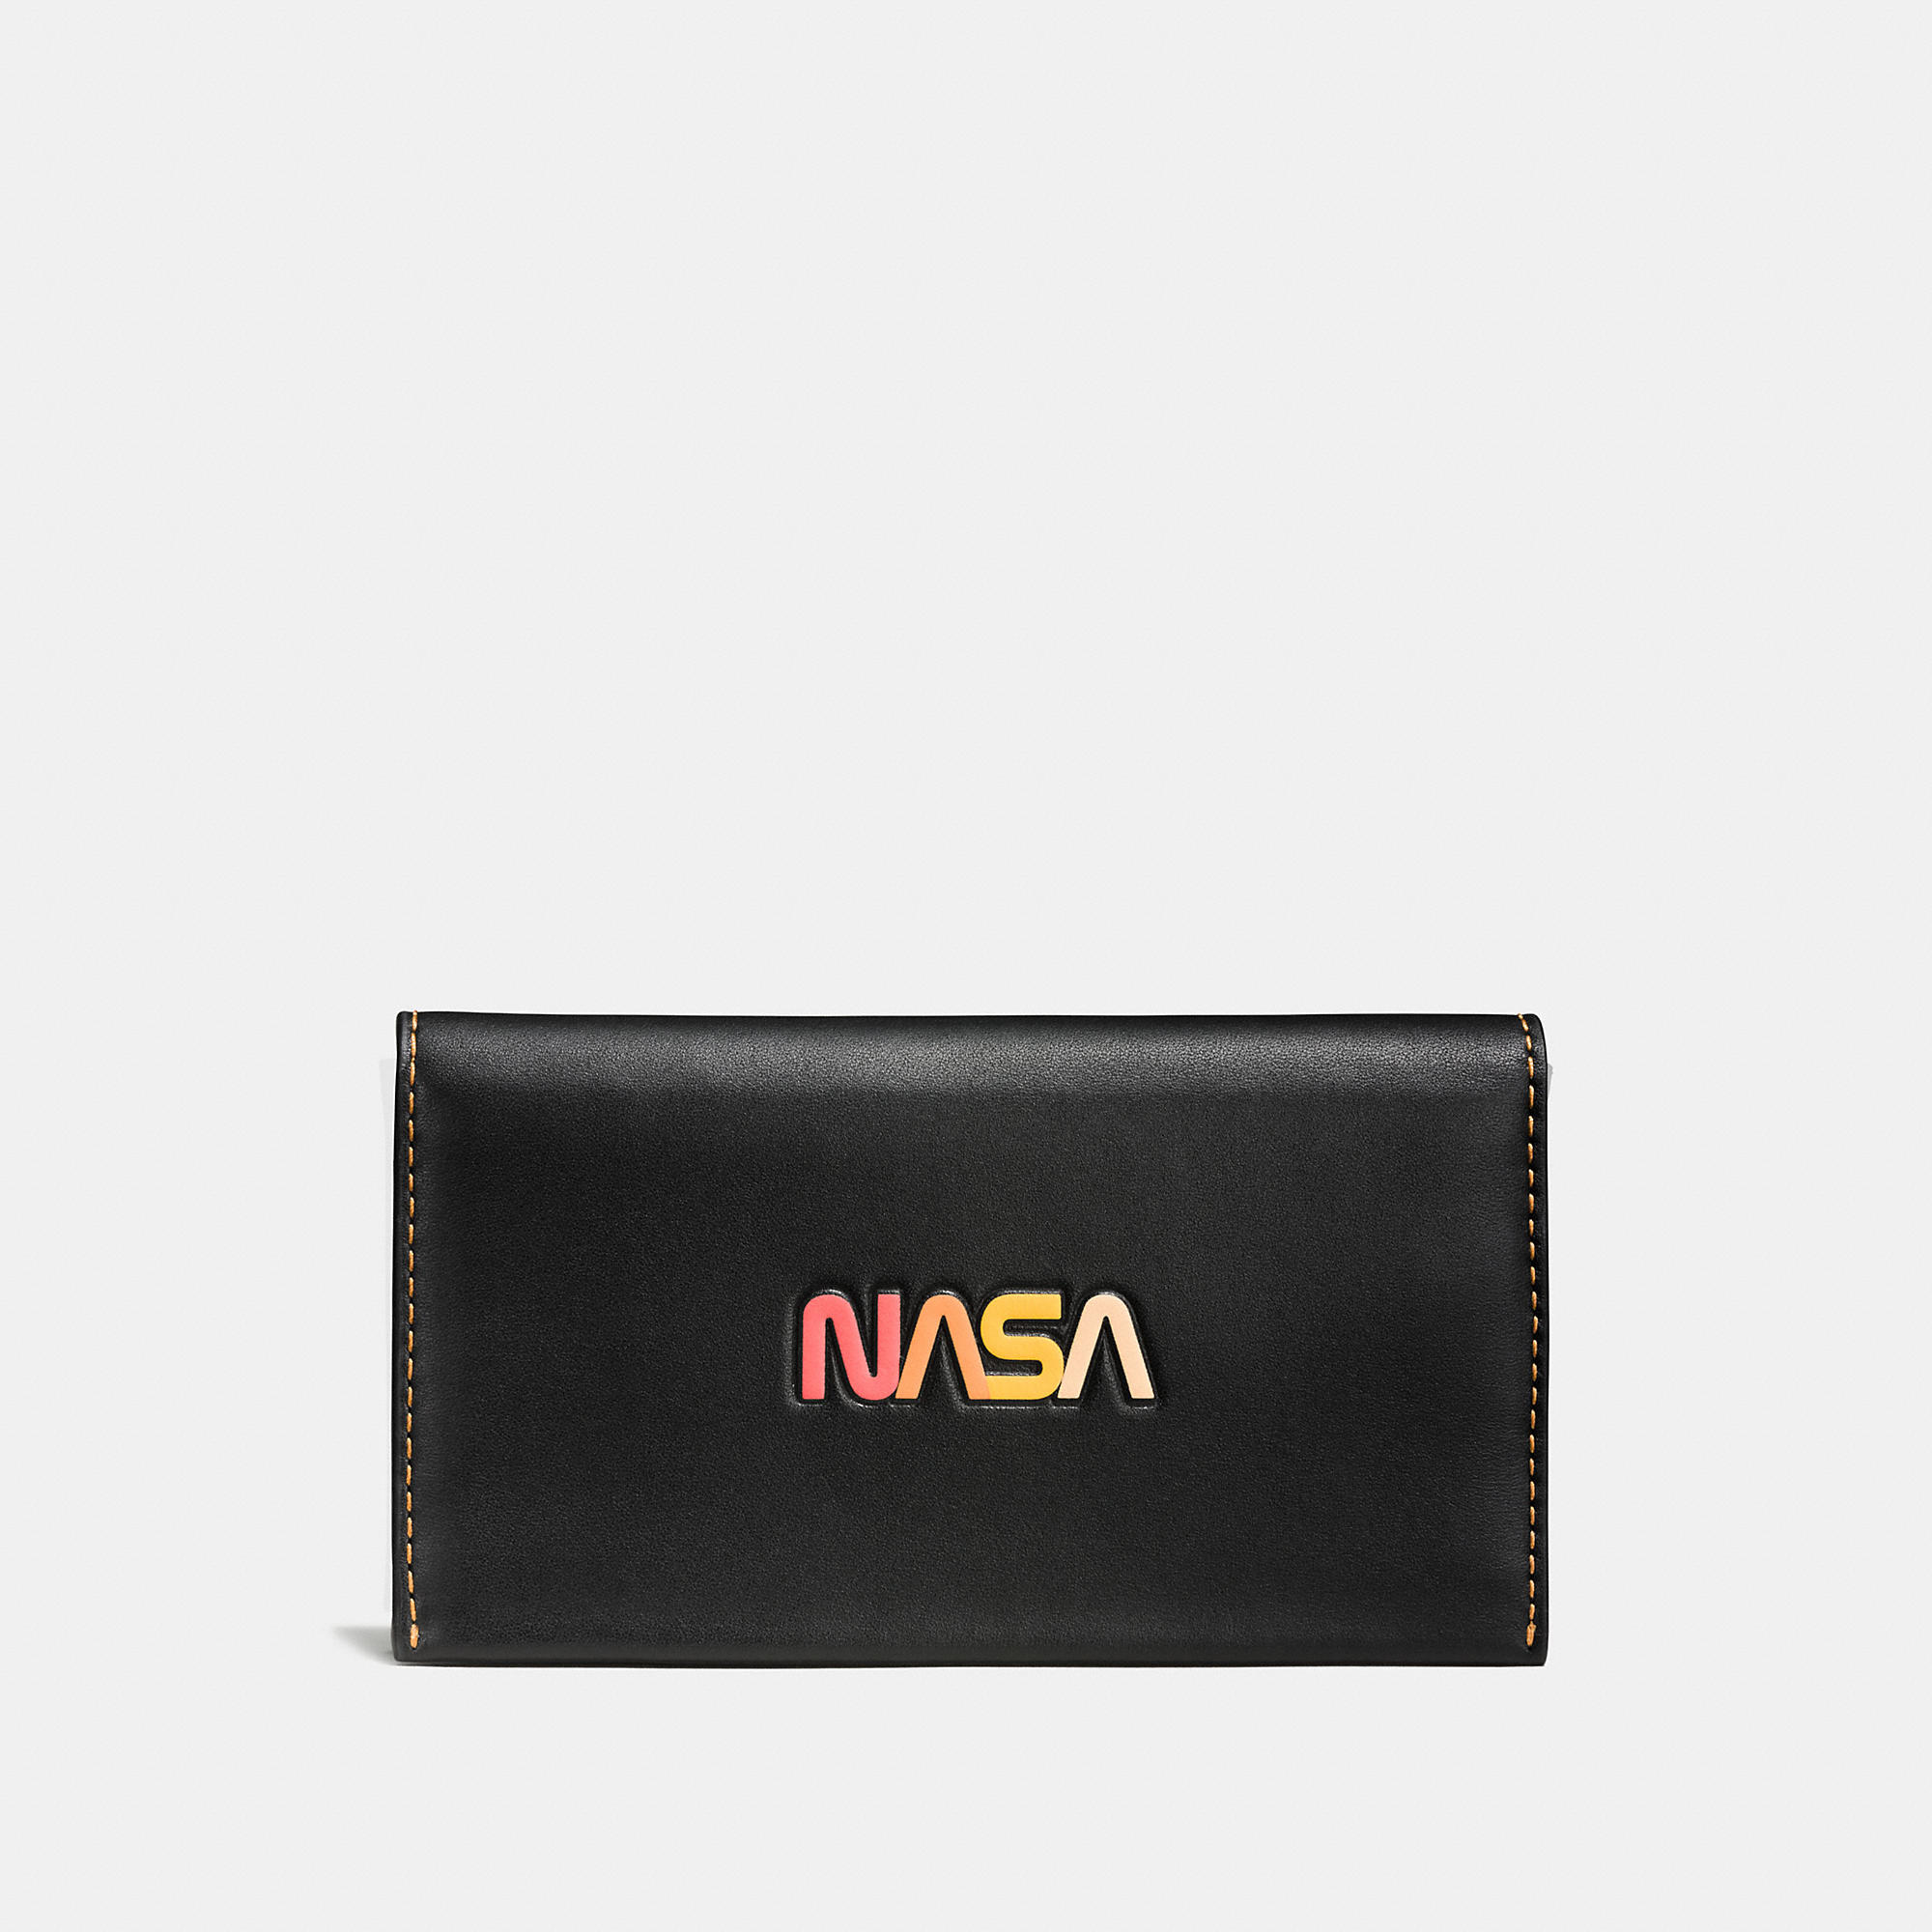 Coach Phone Wallet In Glovetanned Leather With Embossed Space